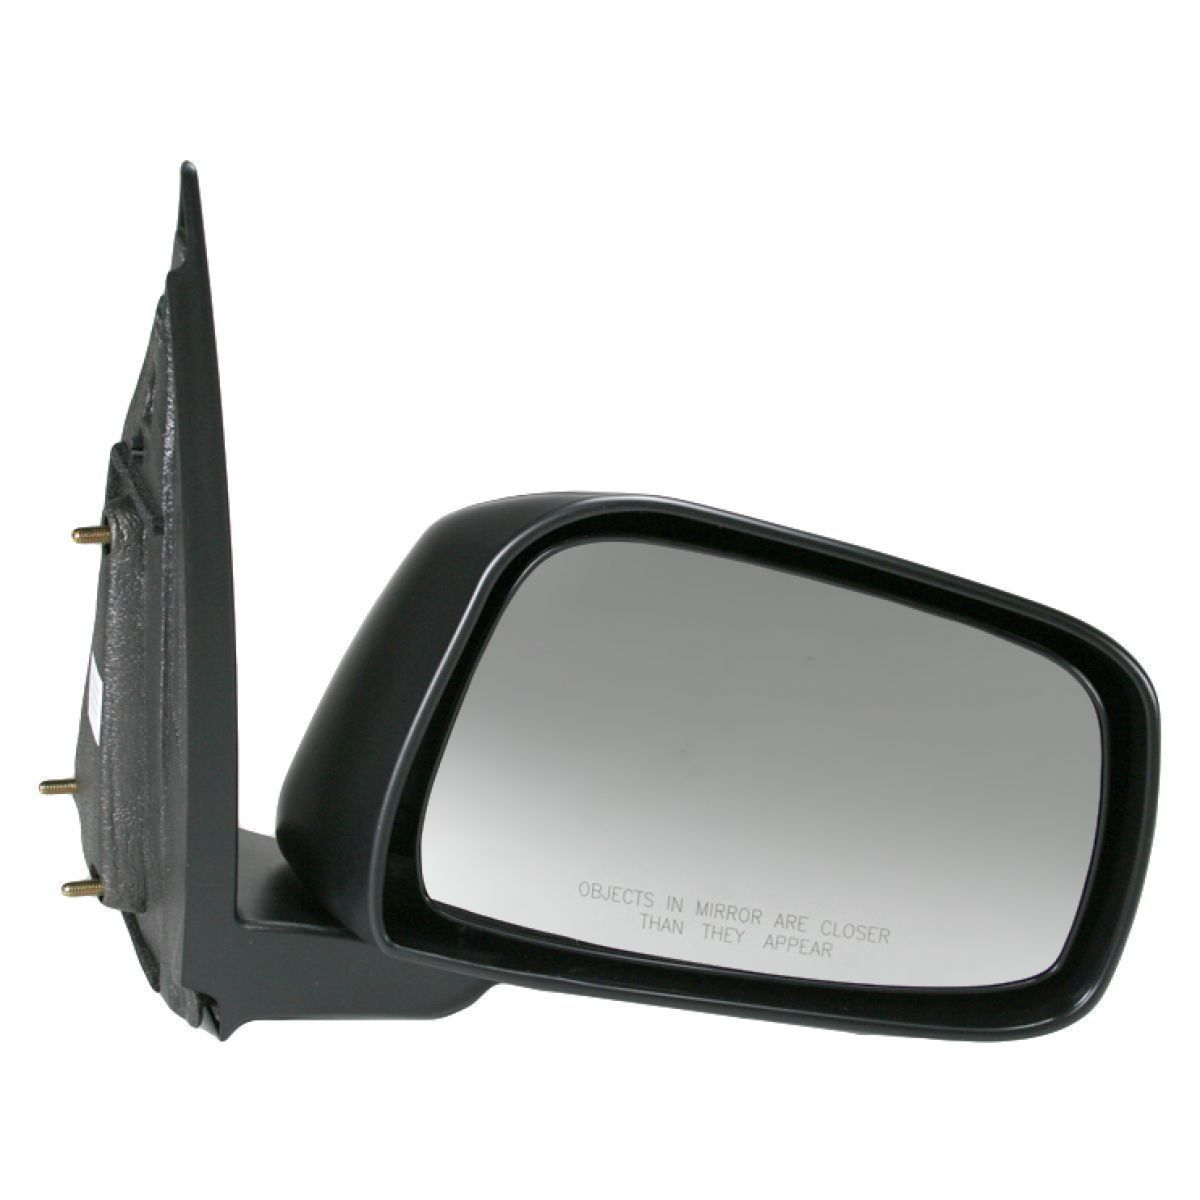 USミラー 05-13 Nissan Xterra Frontierの新しいマニュアルサイドビューミラー乗客右RH New Manual Side View Mirror Passenger Right RH for 05-13 Nissan Xterra Frontier